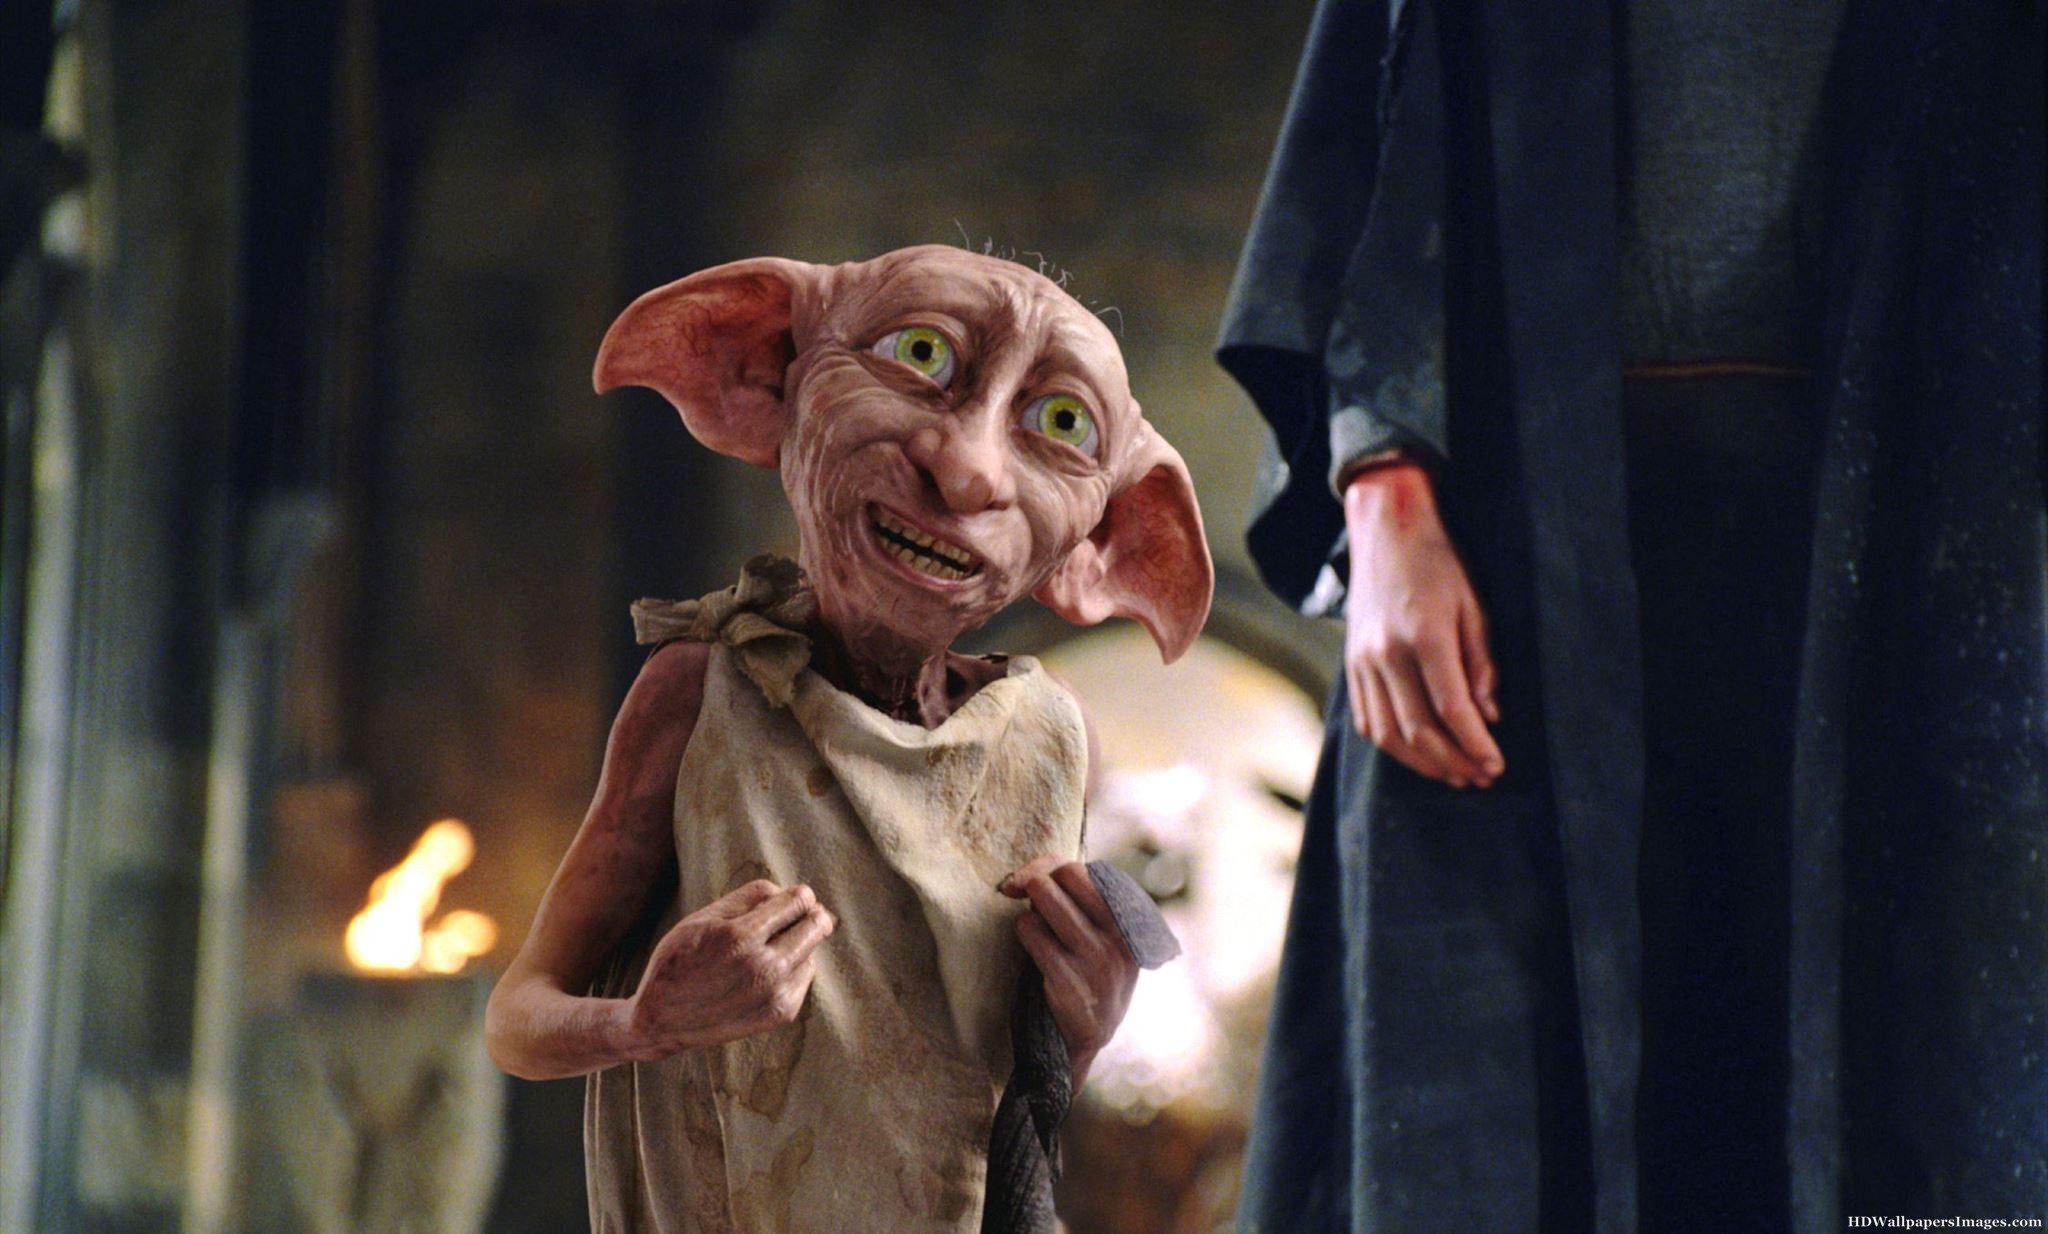 A woman dressed her hairless cat up as Dobby for Halloween, and it is EVERYTHING